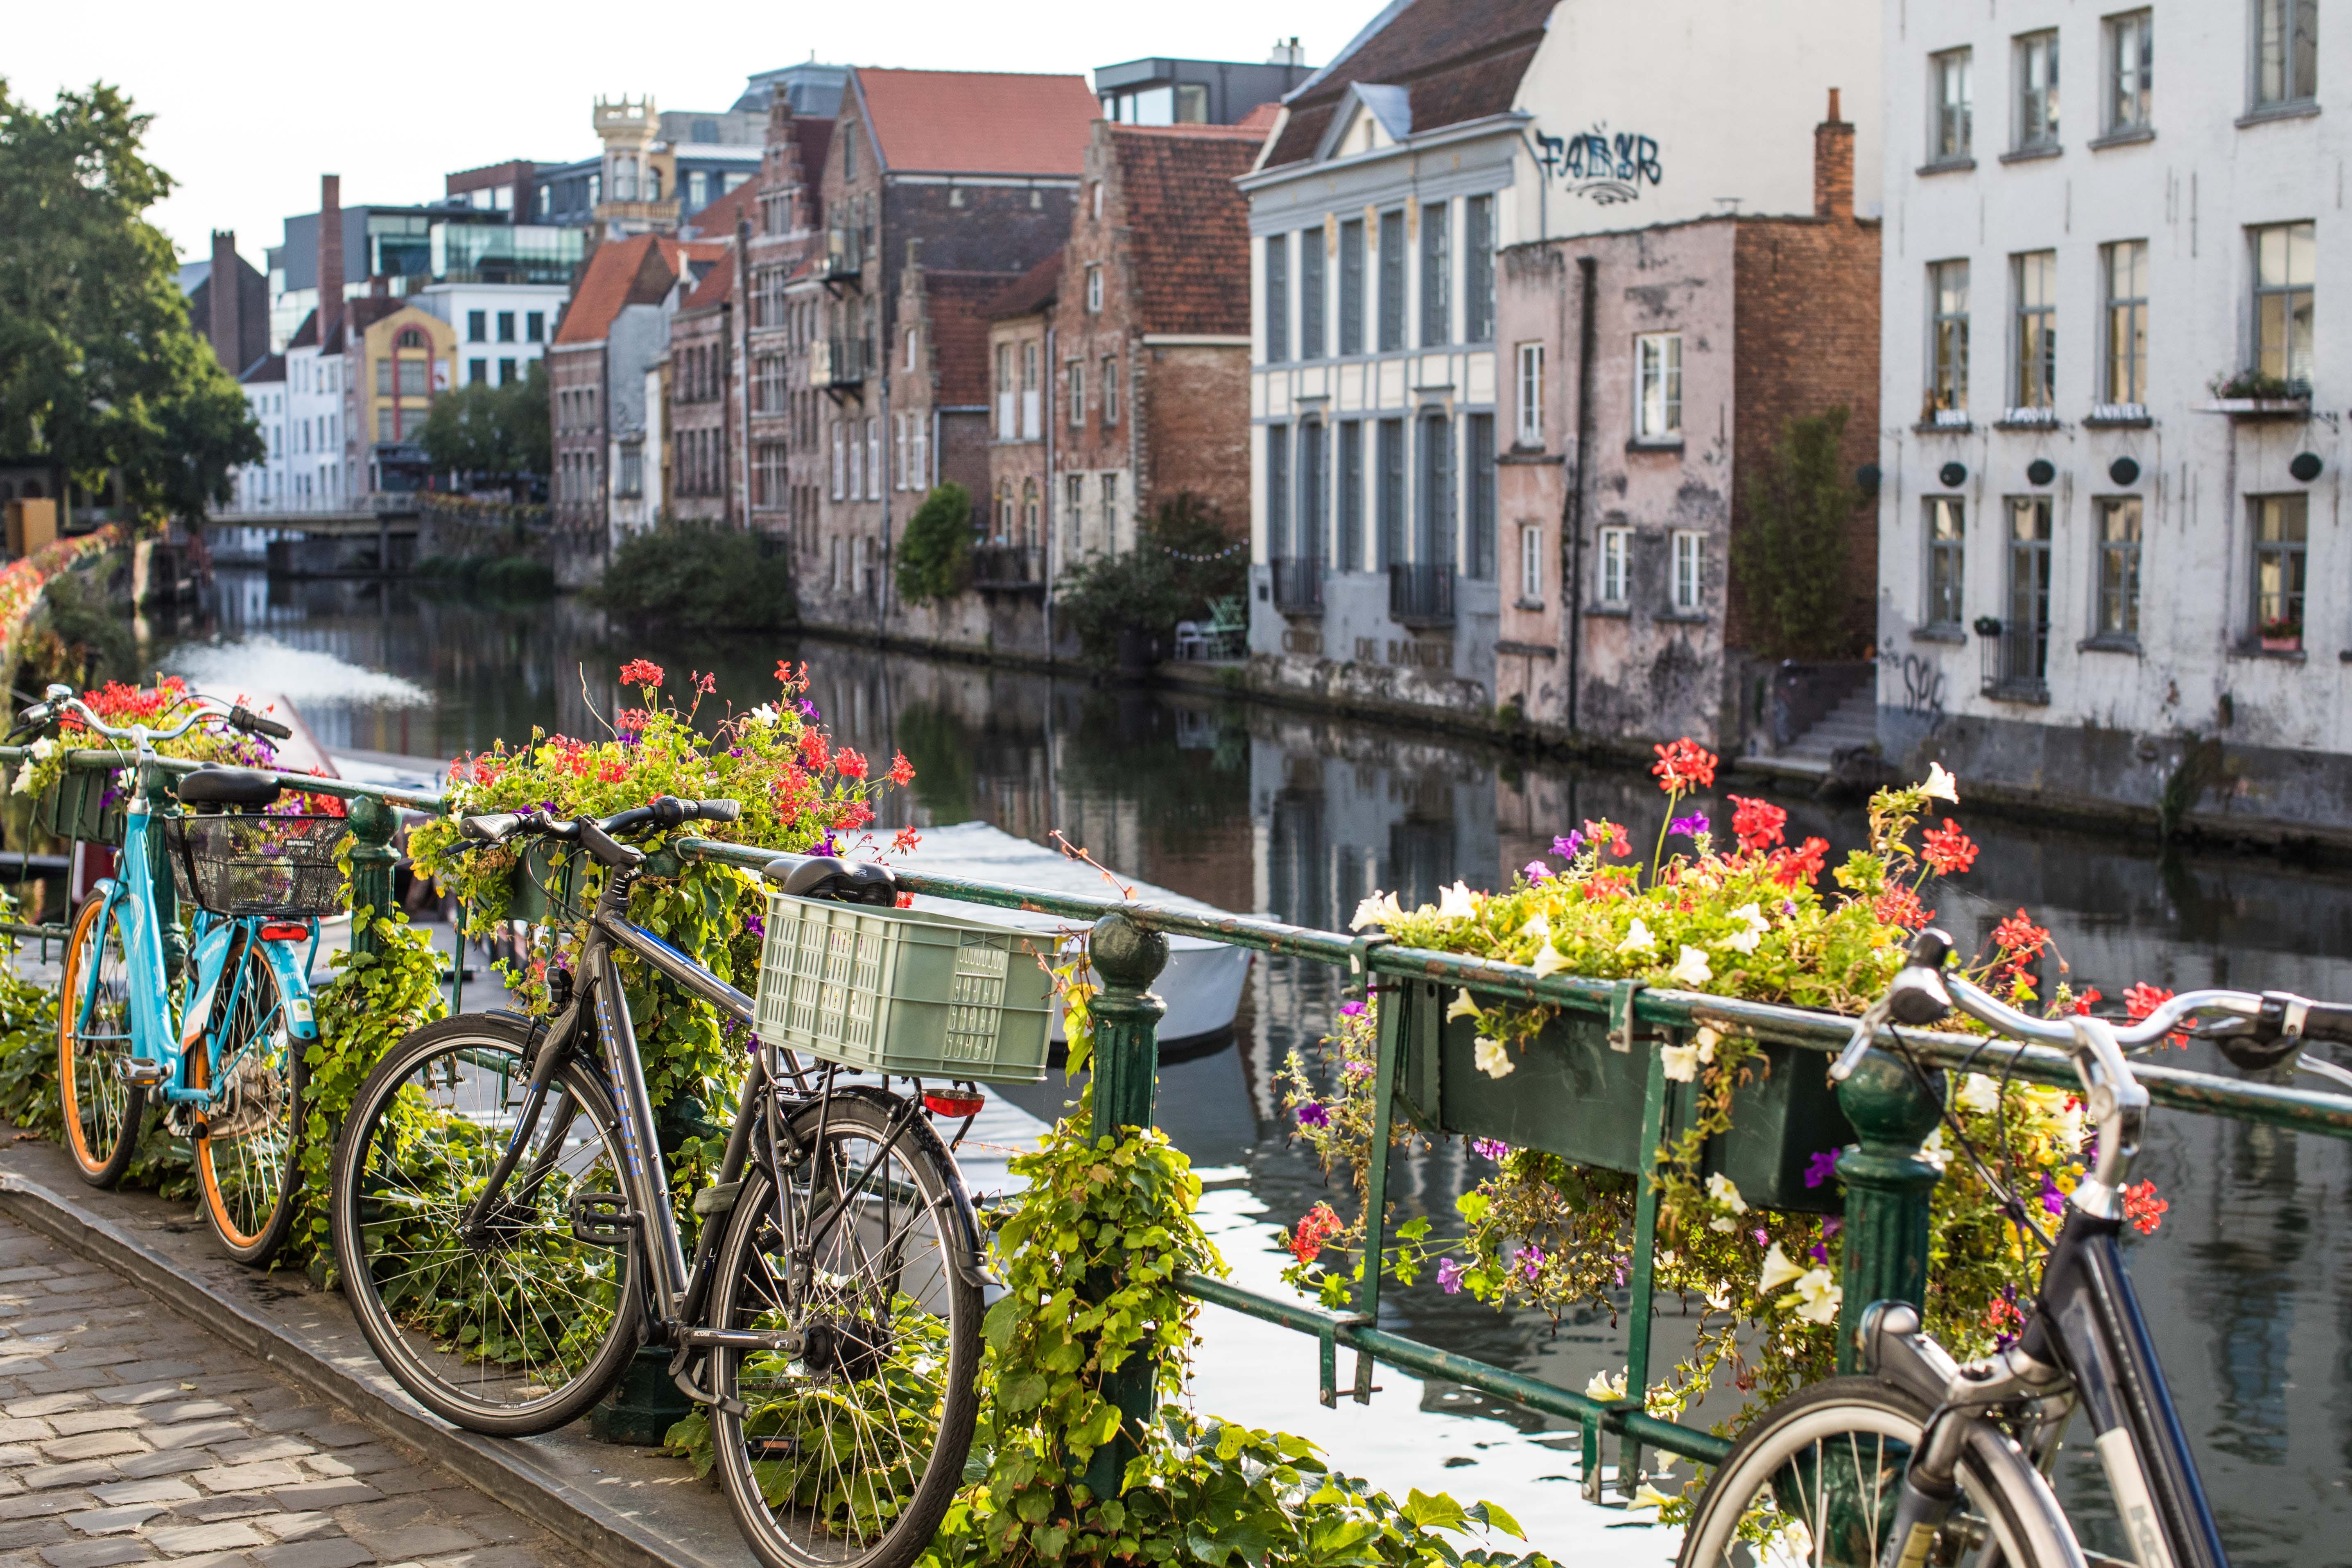 How to spend a weekend in Ghent, Belgium's foodie destination